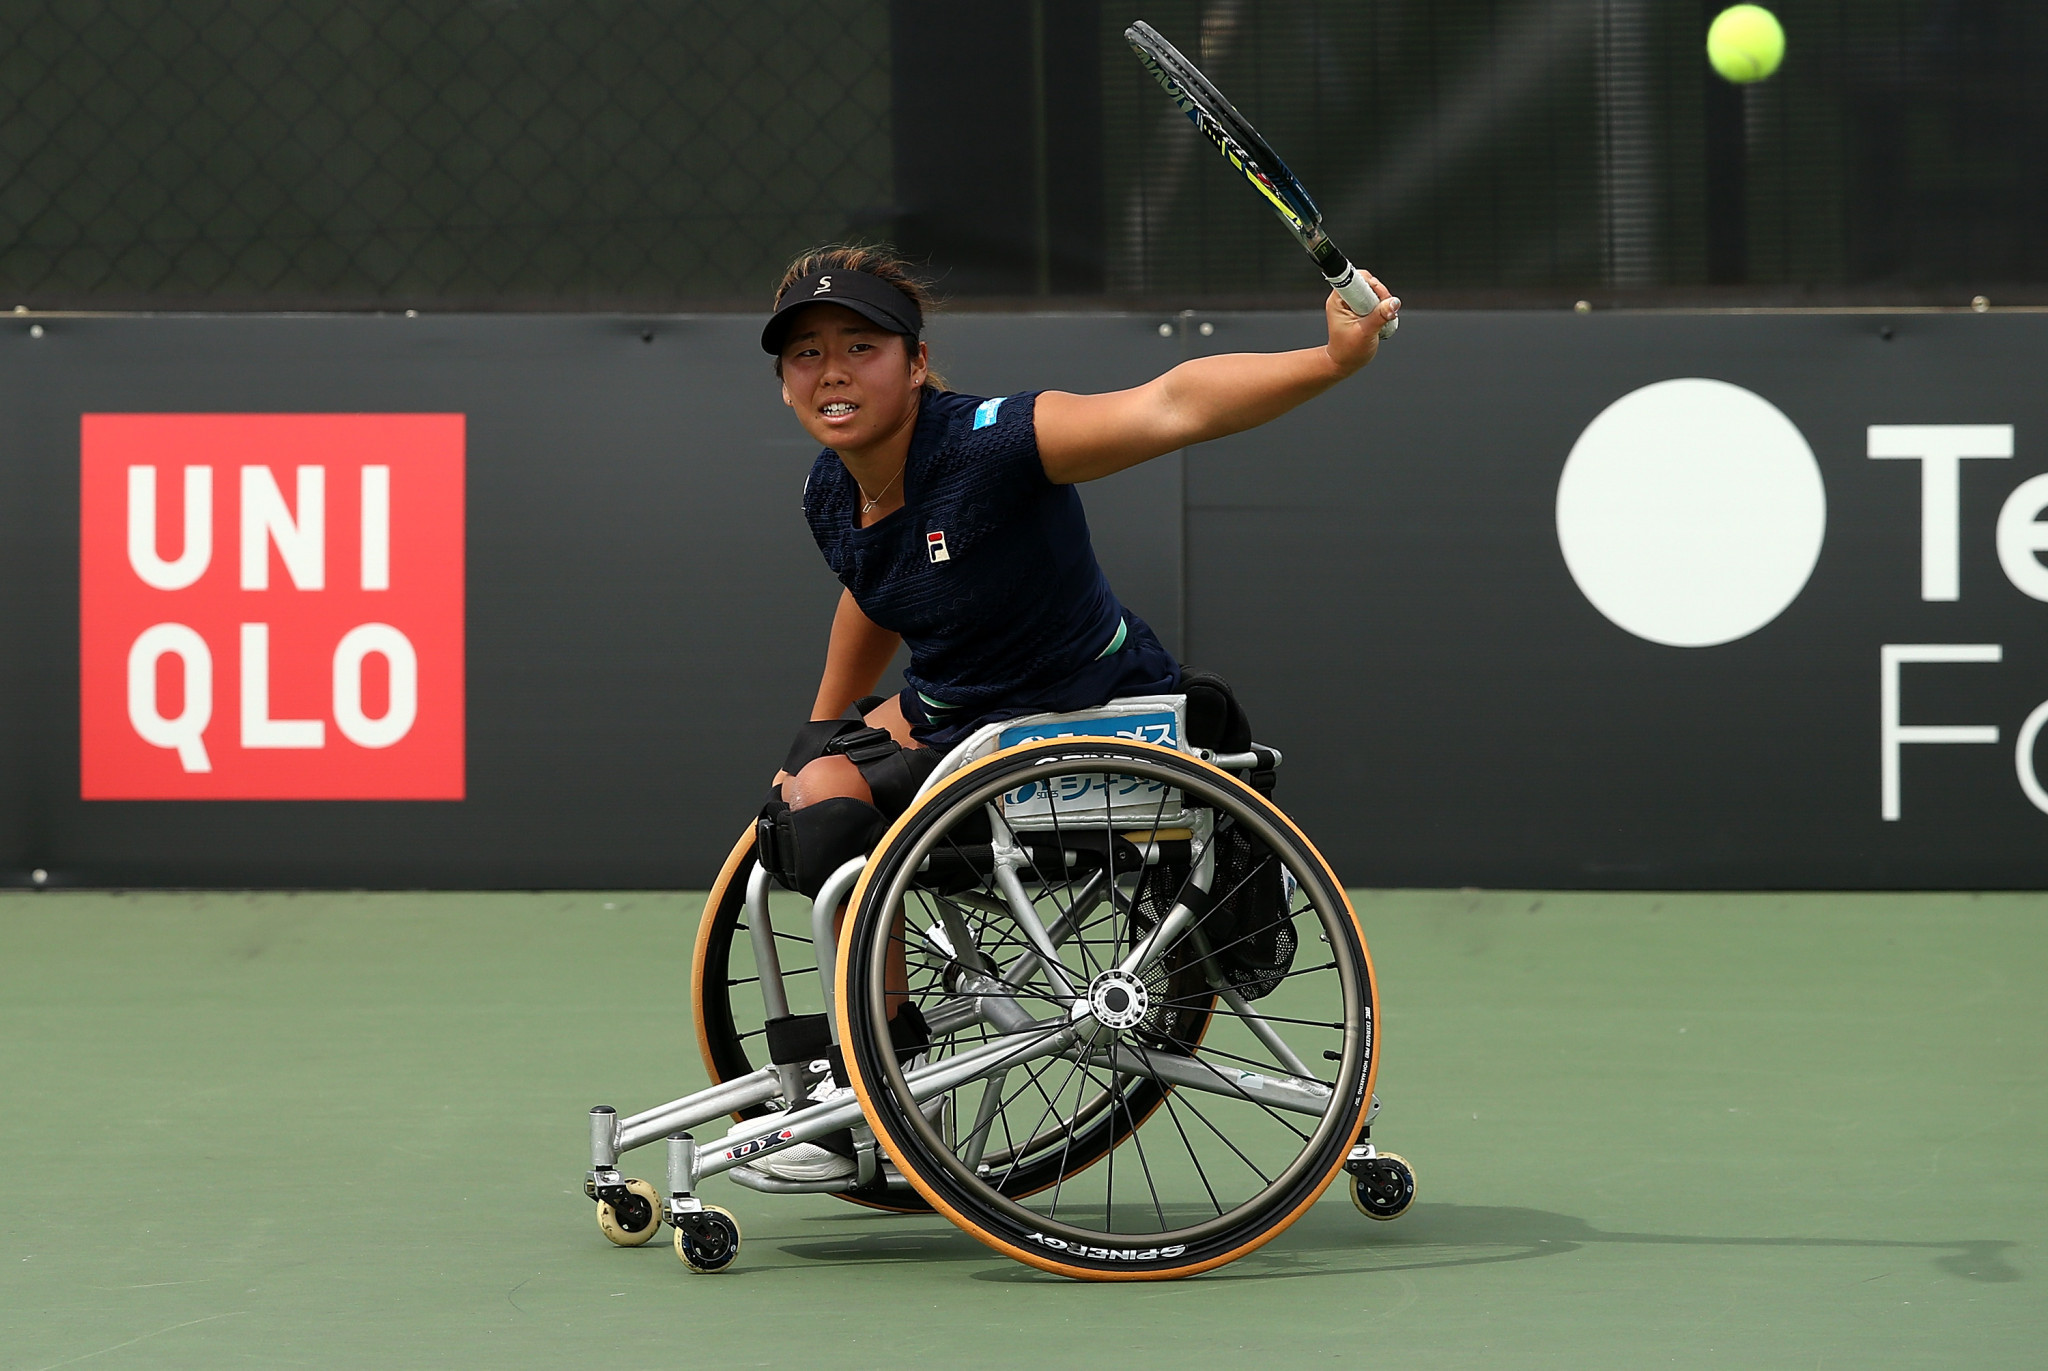 Wimbledon stars among draw for 2018 British Open Wheelchair Tennis Championships